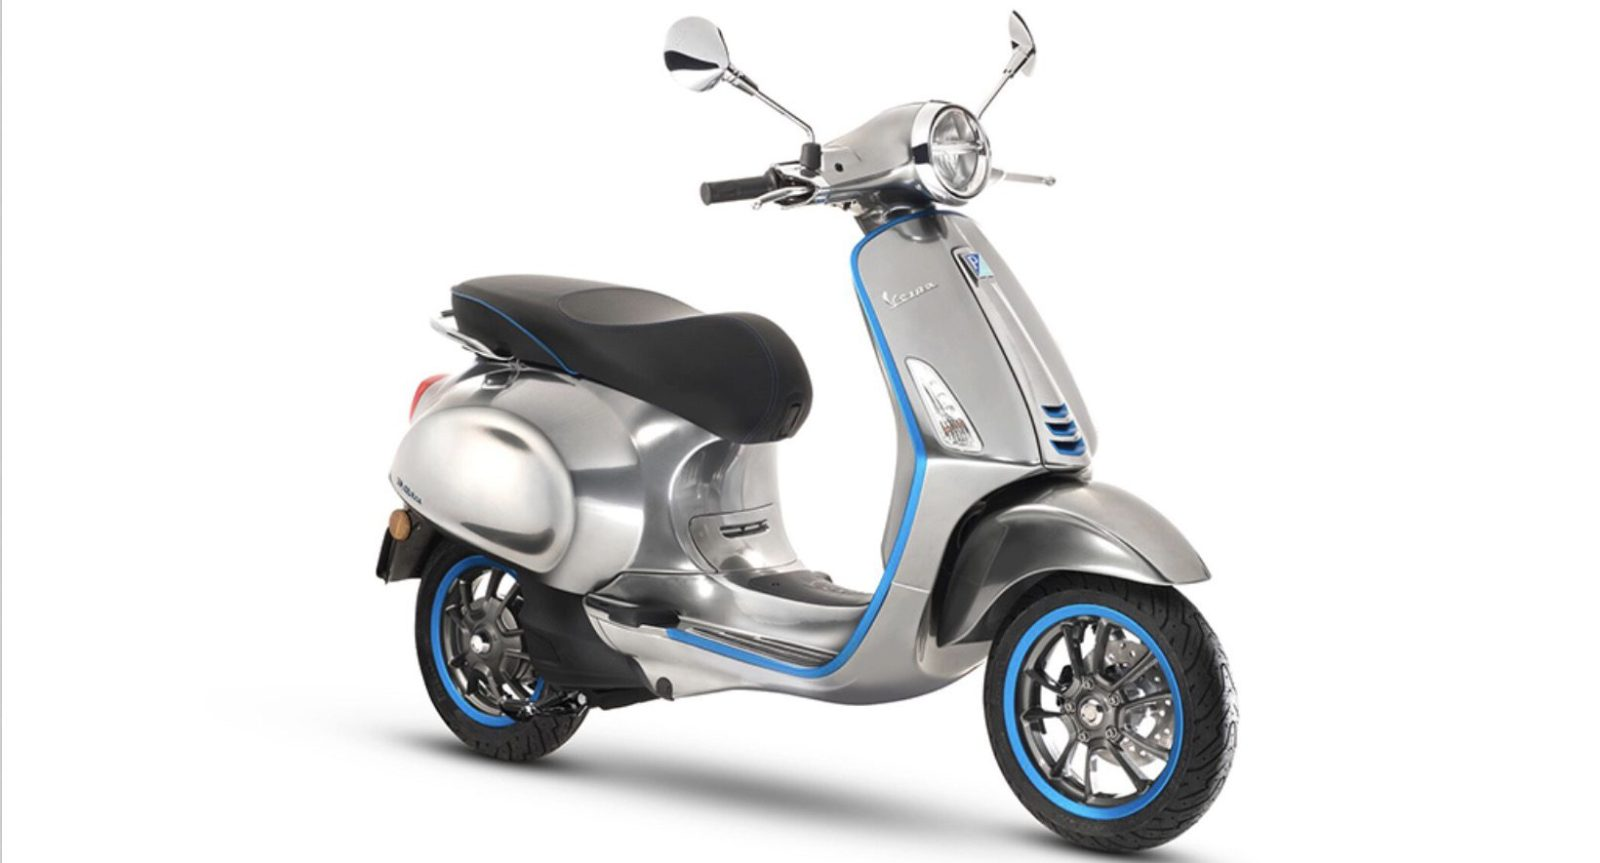 Vespa releases specs of its first electric scooter: 4 kW